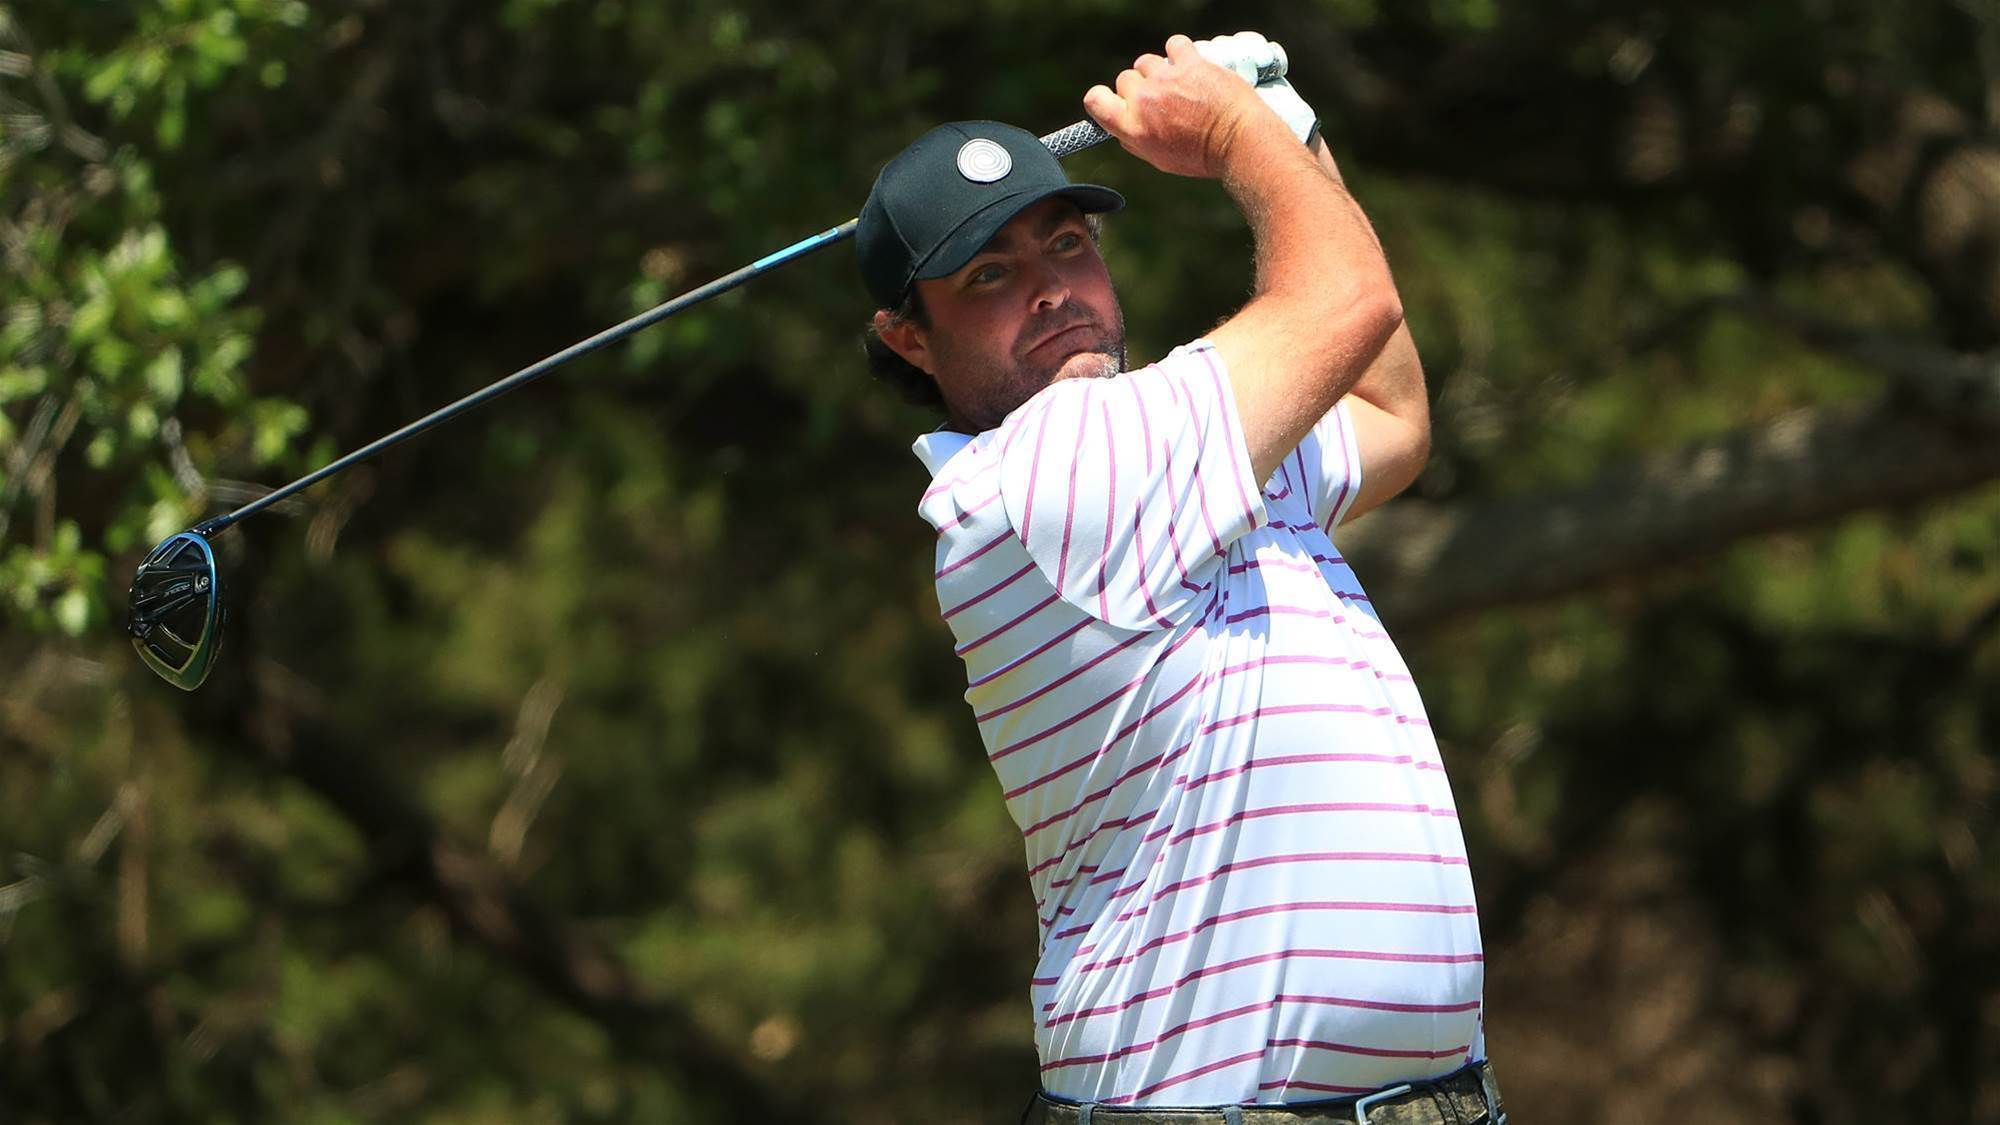 Bowditch set for spinal fusion surgery